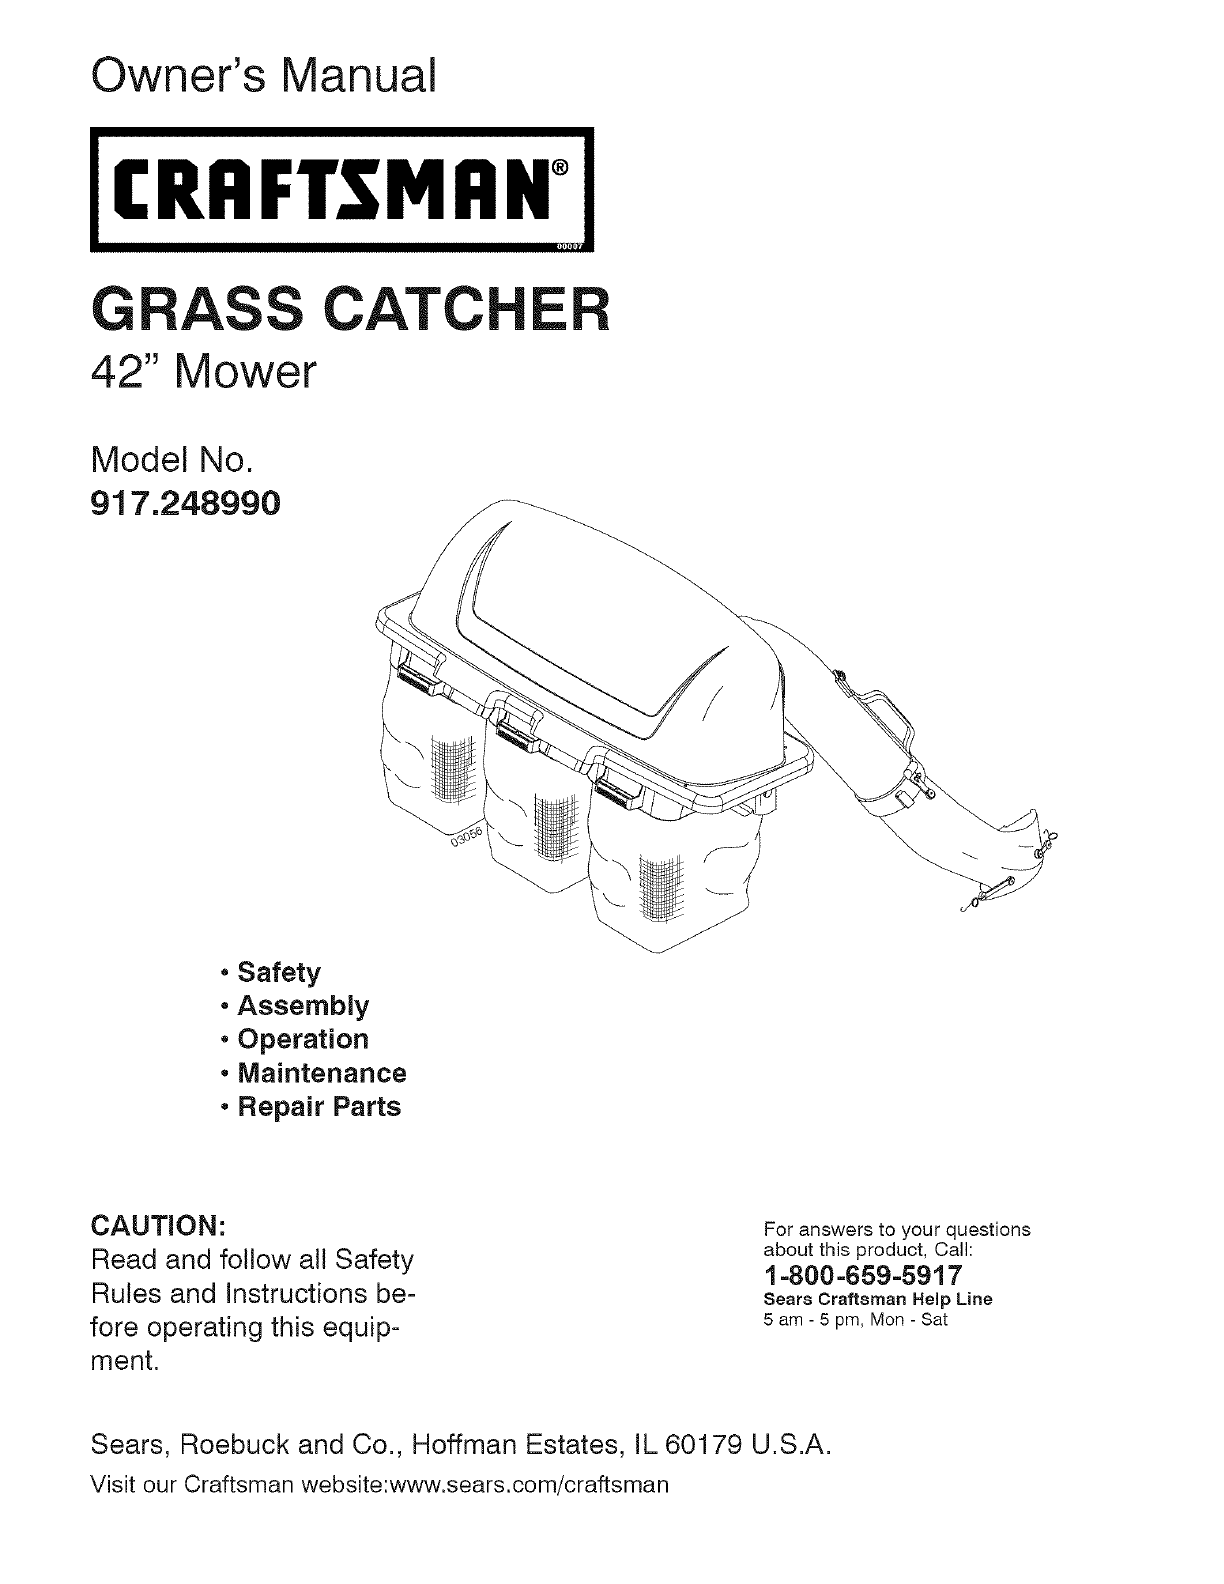 craftsman lawn mower accessory 917 24899 user guide manualsonline com rh lawnandgarden manualsonline com Craftsman Weed Wacker Manual Craftsman Electric Lawn Mower